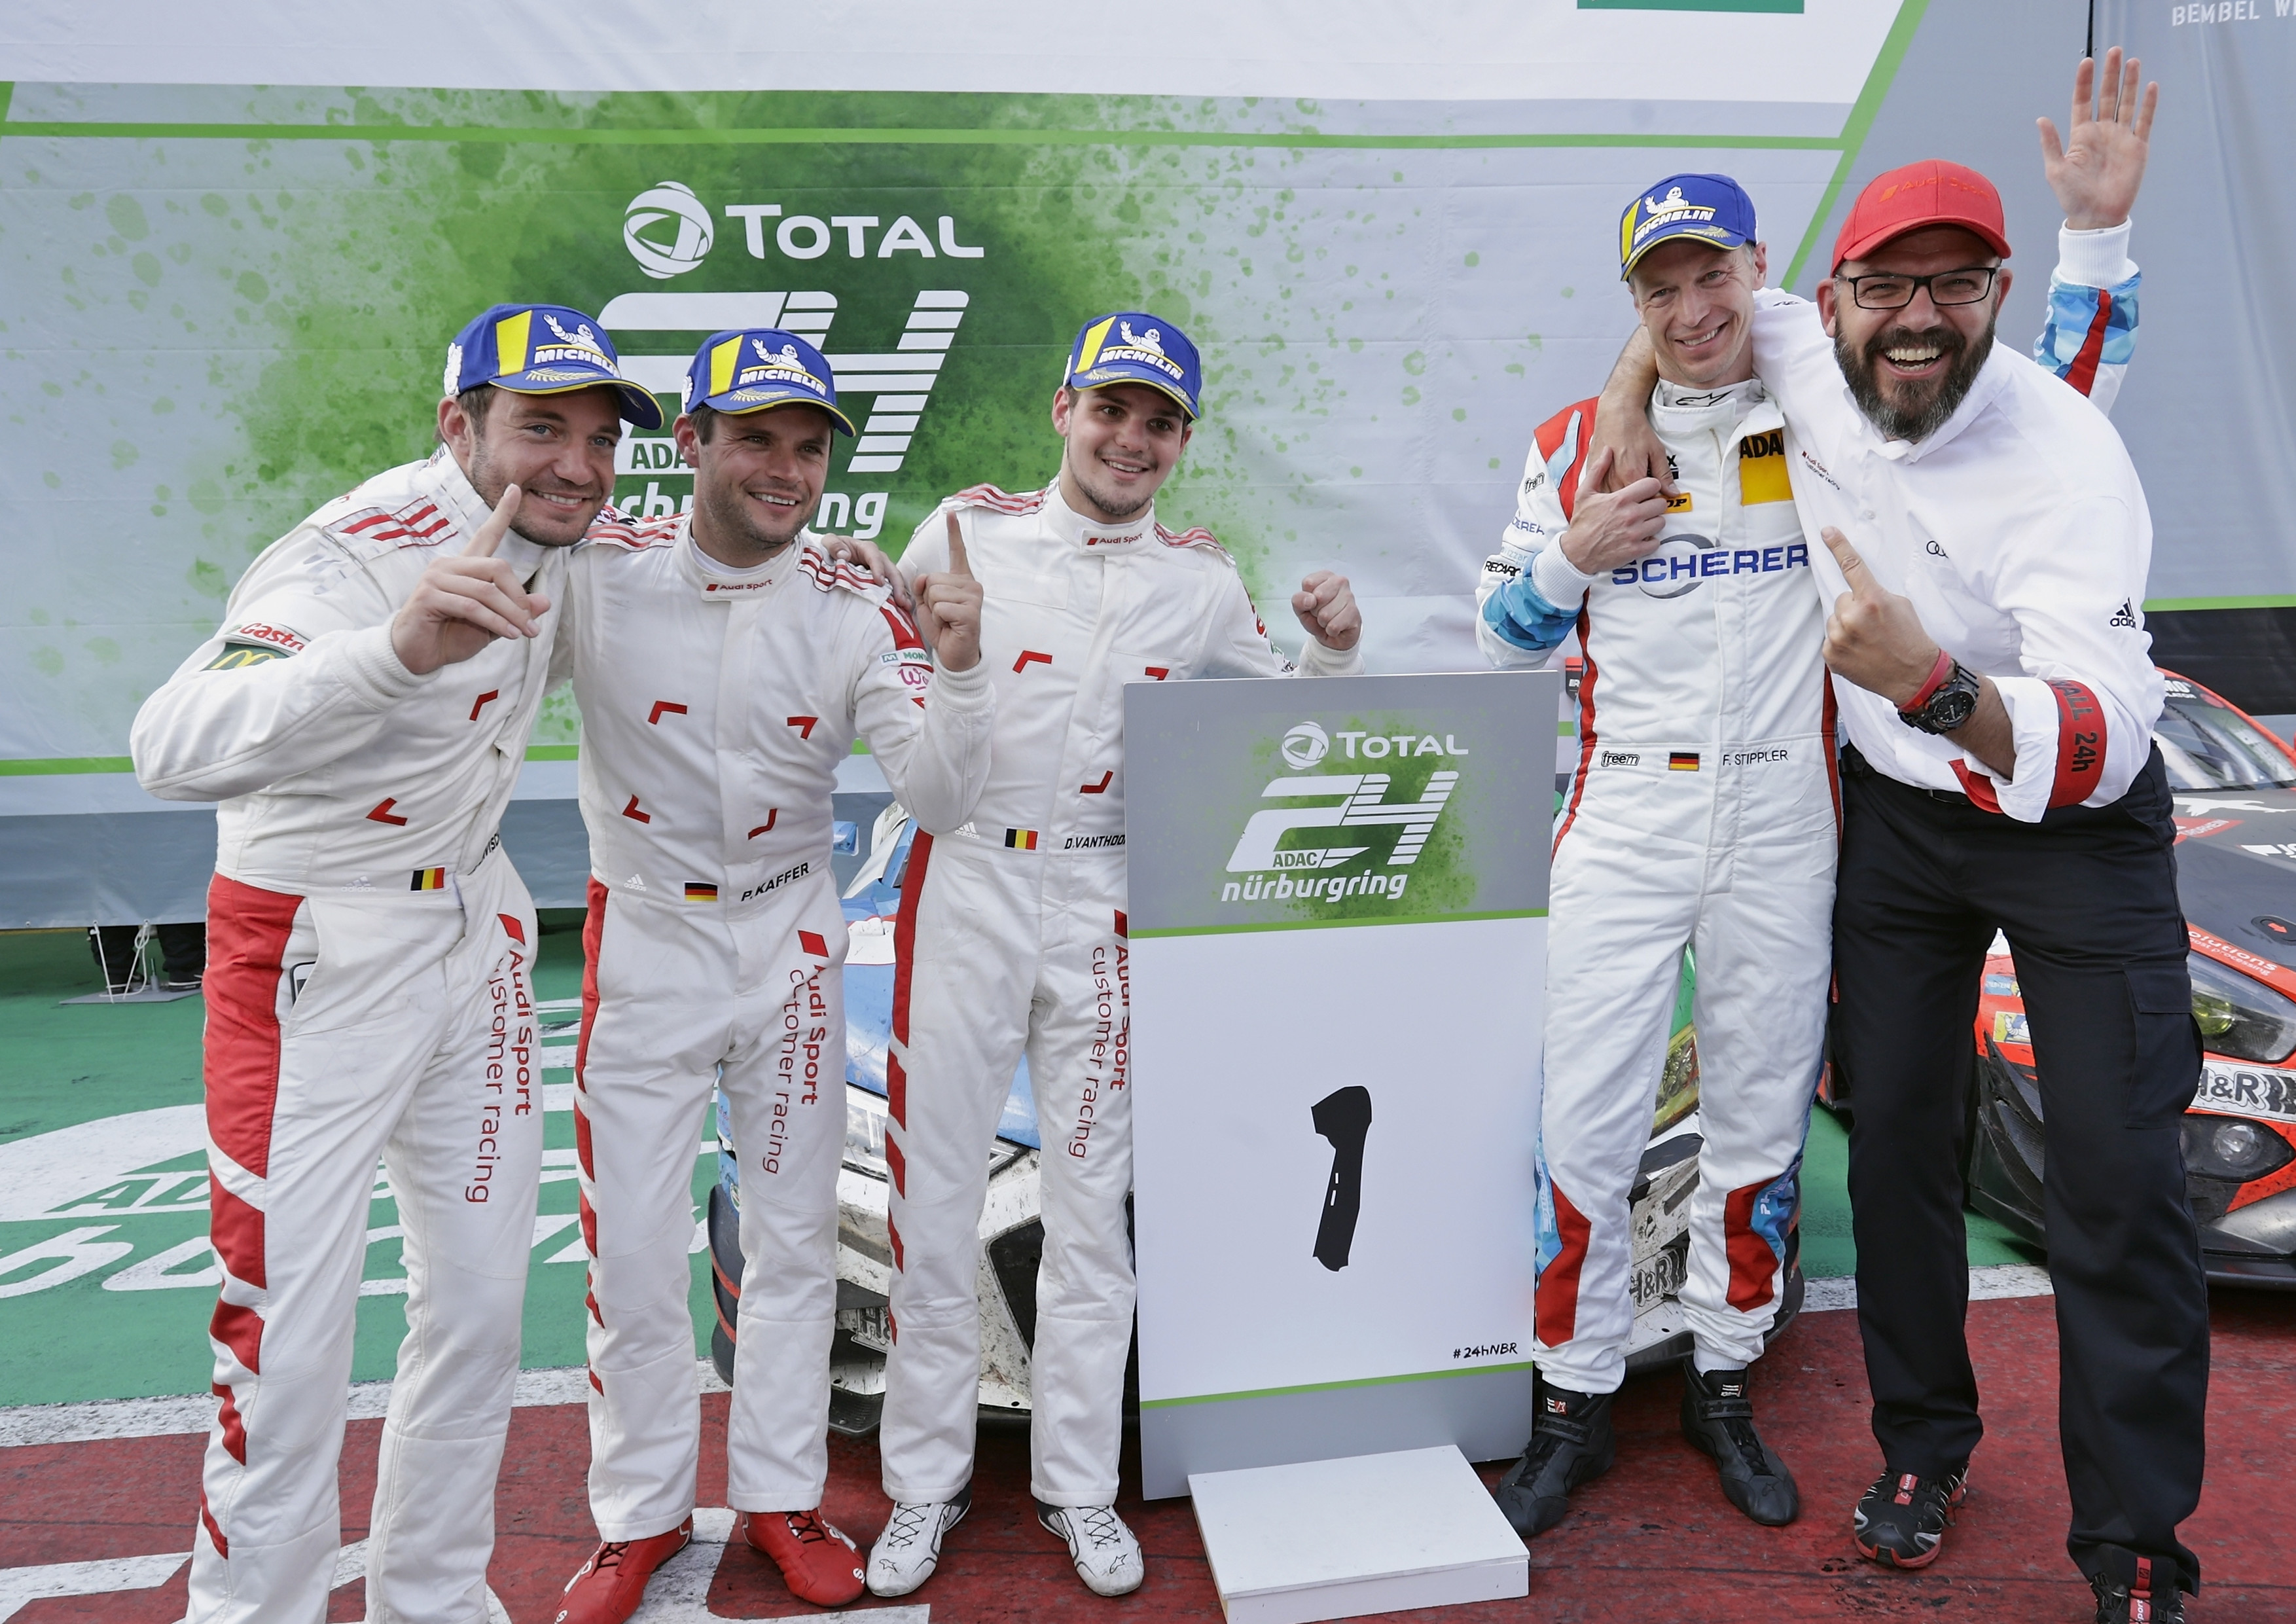 The Nürburgring 24 Hours delivers all-Michelin podium